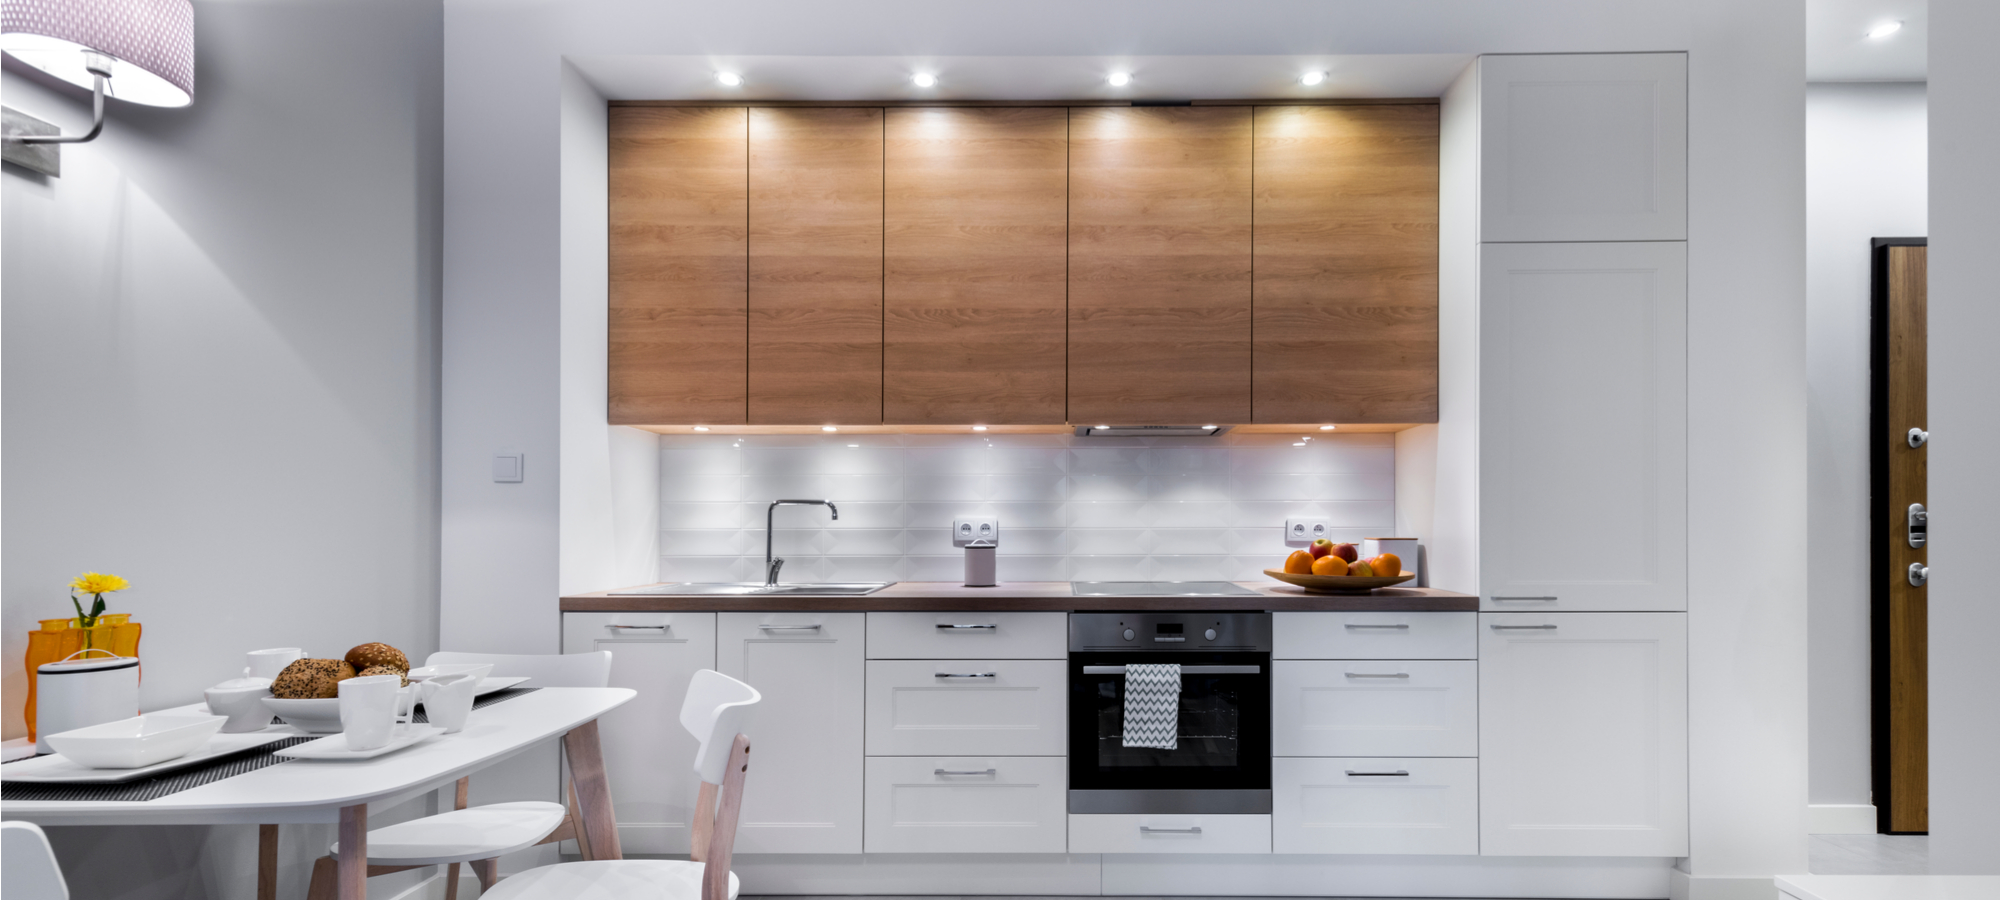 Quality Appliance Repair Service In Palm Springs